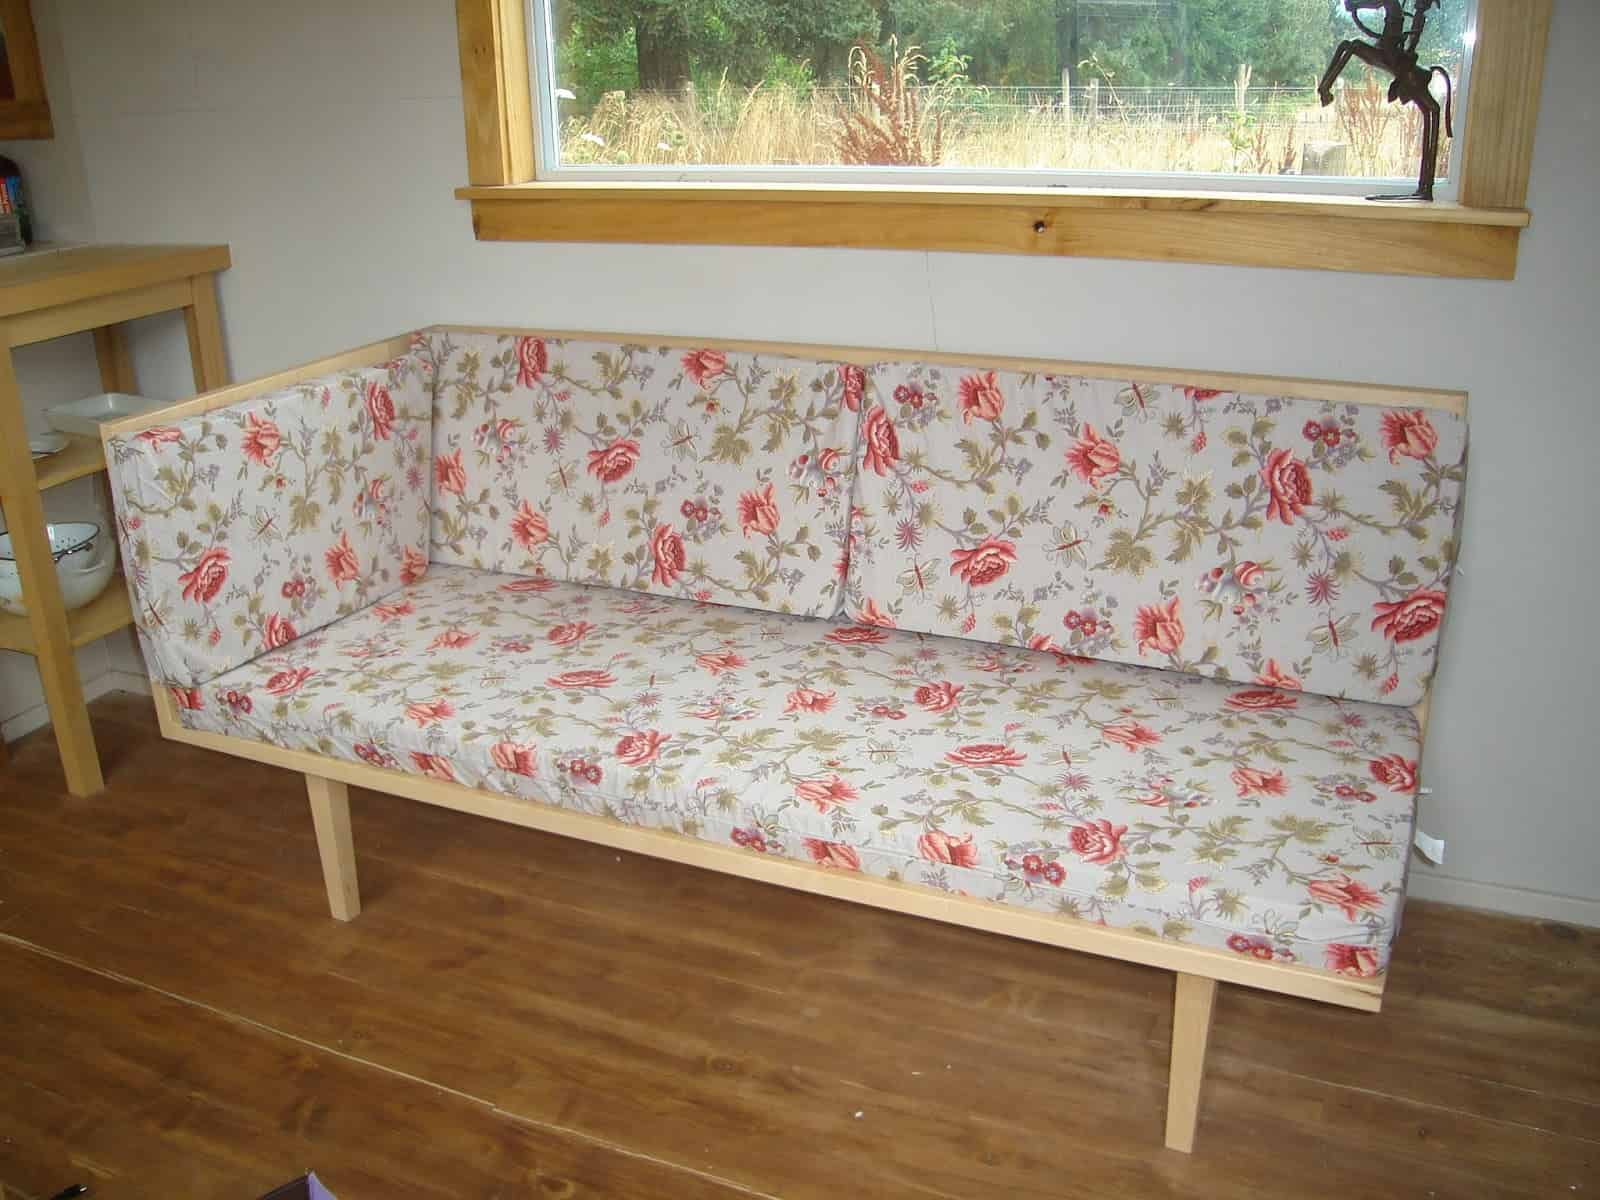 Building A Non Toxic Sofa My Chemical